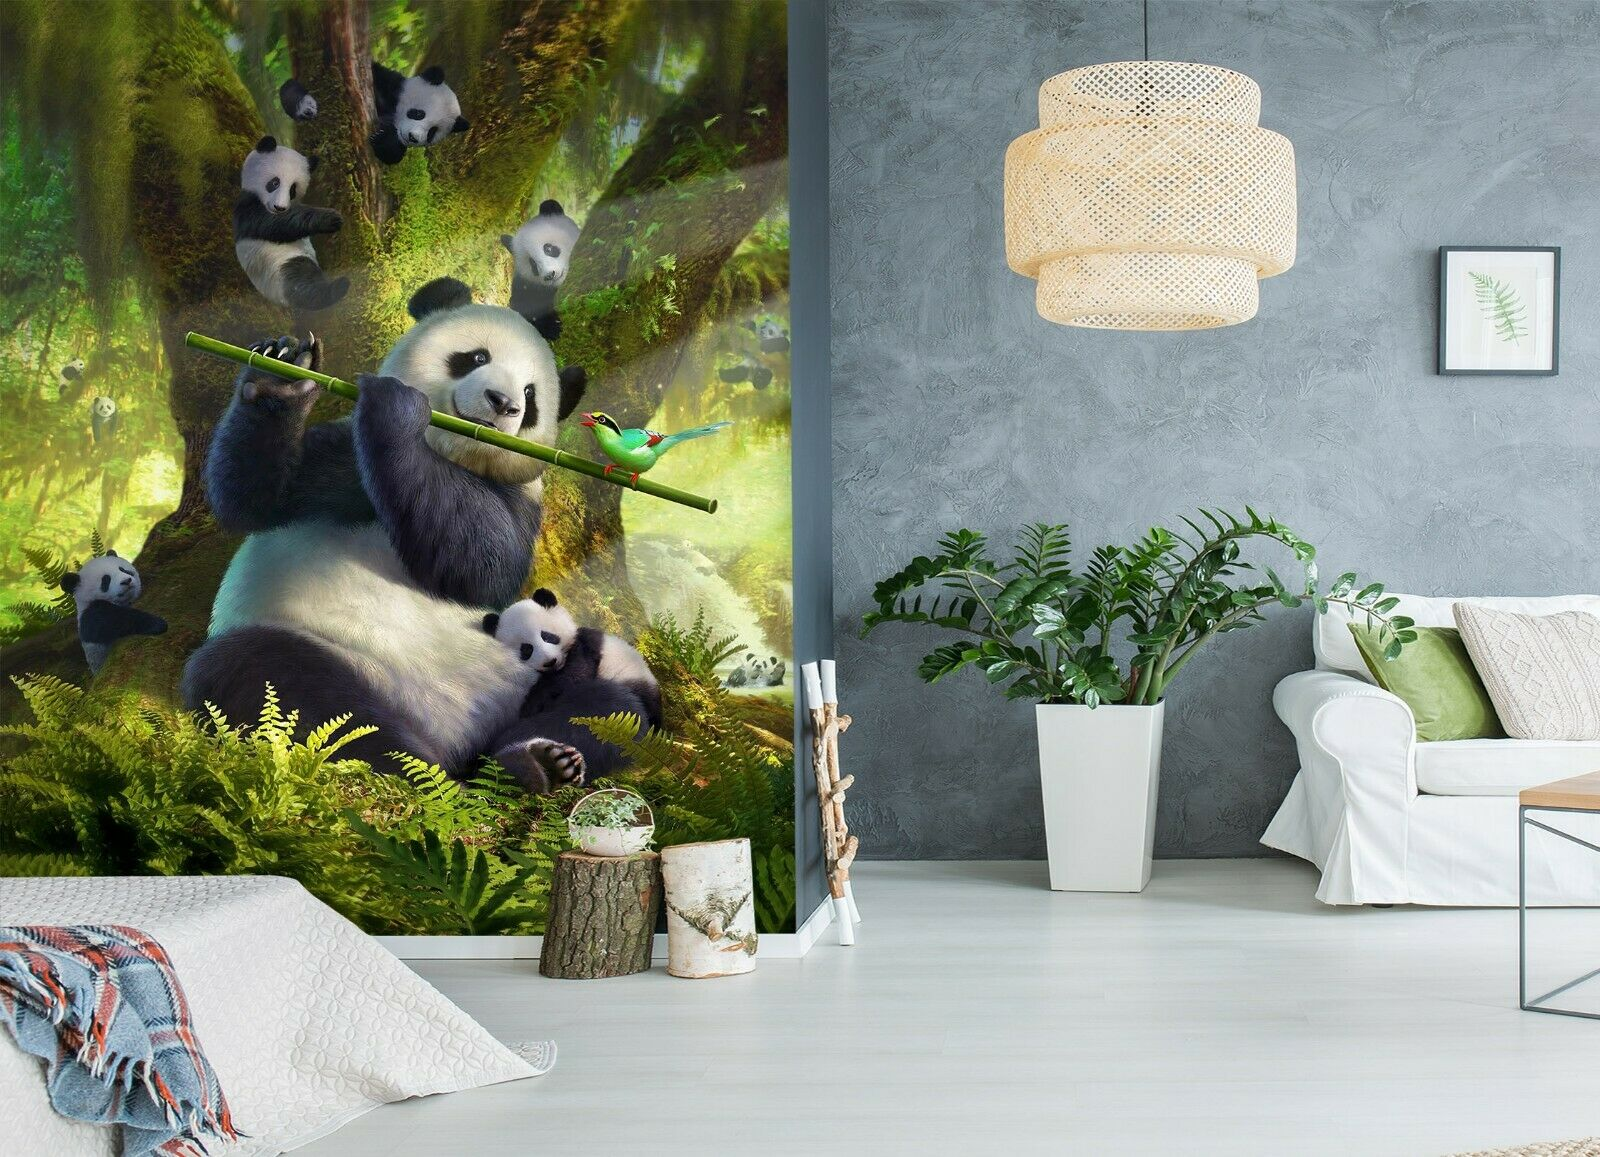 3D Forest Giant Pand N62 Wallpaper Wall Mural Self-adhesive Jerry LoFaro Angelia